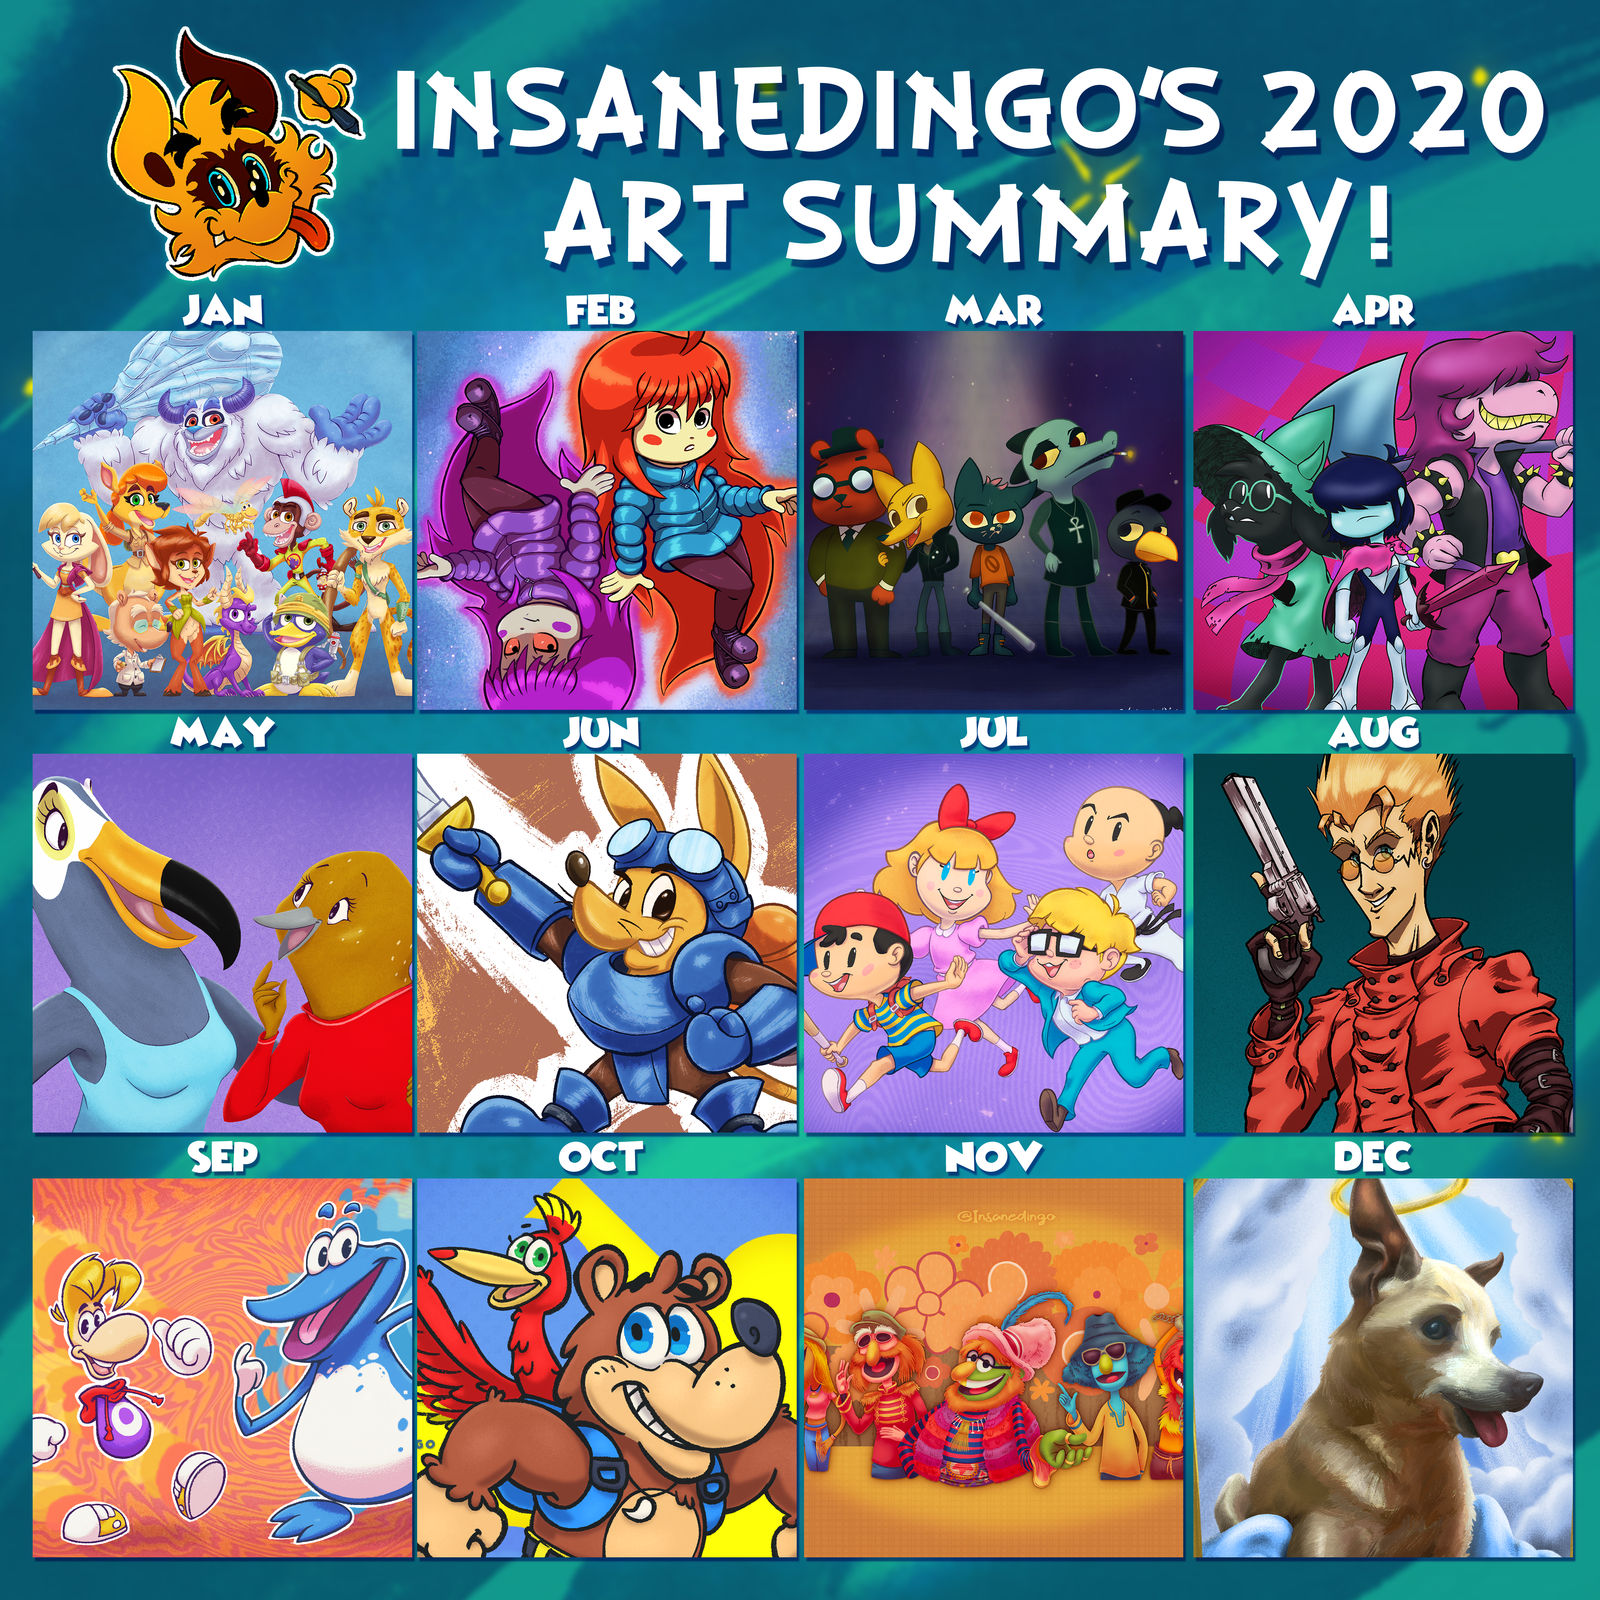 Art Summary of 2020